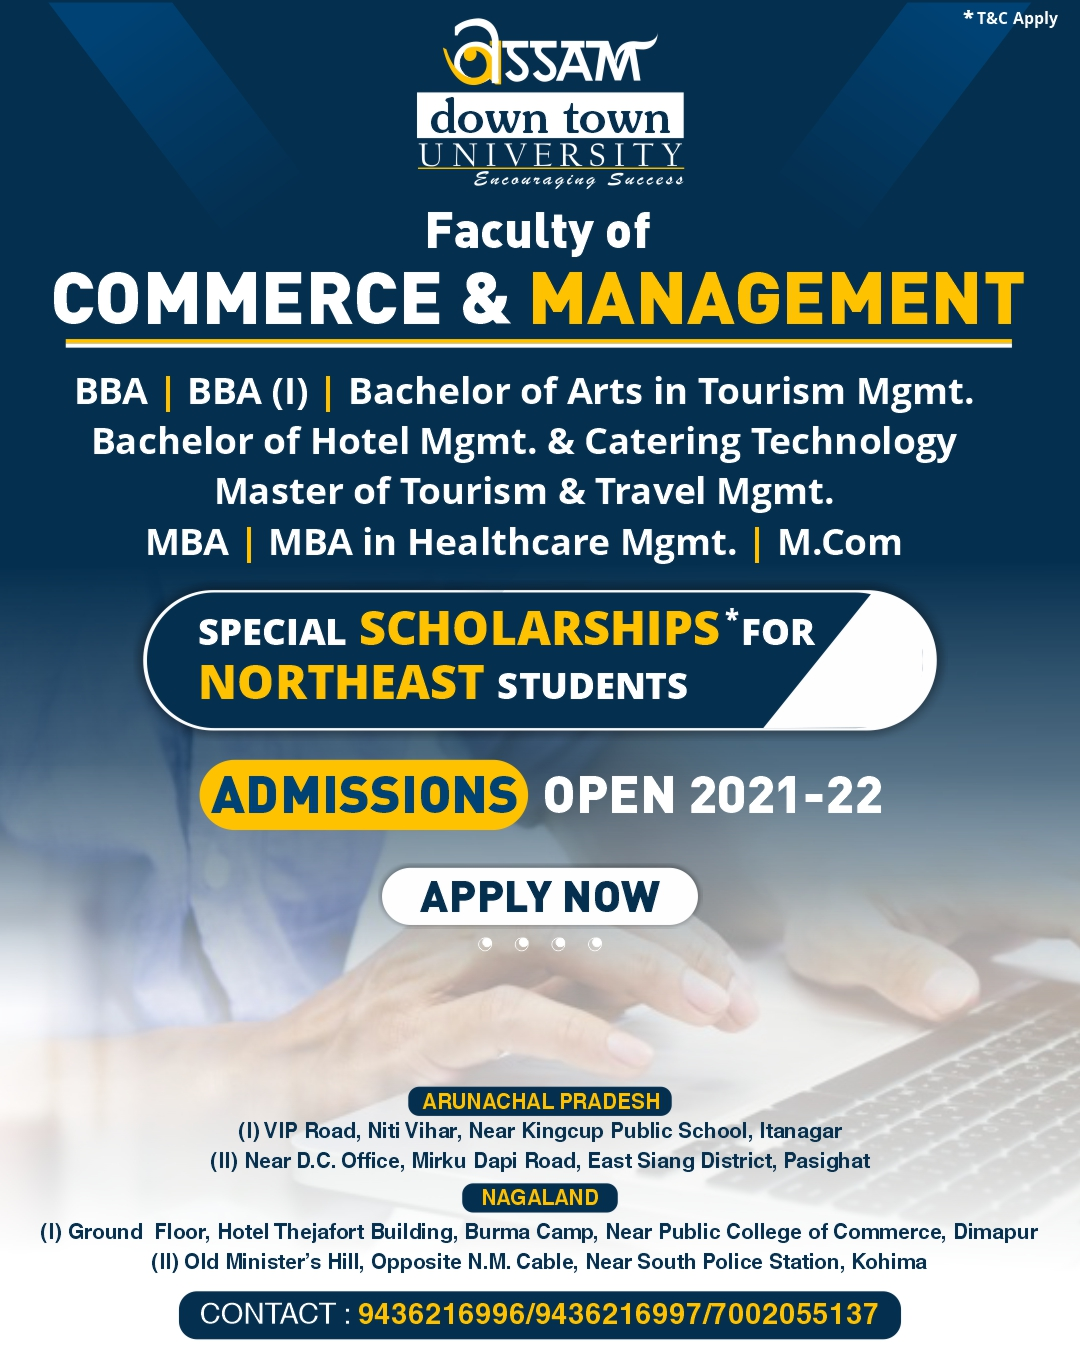 Down Town University - Admission Open